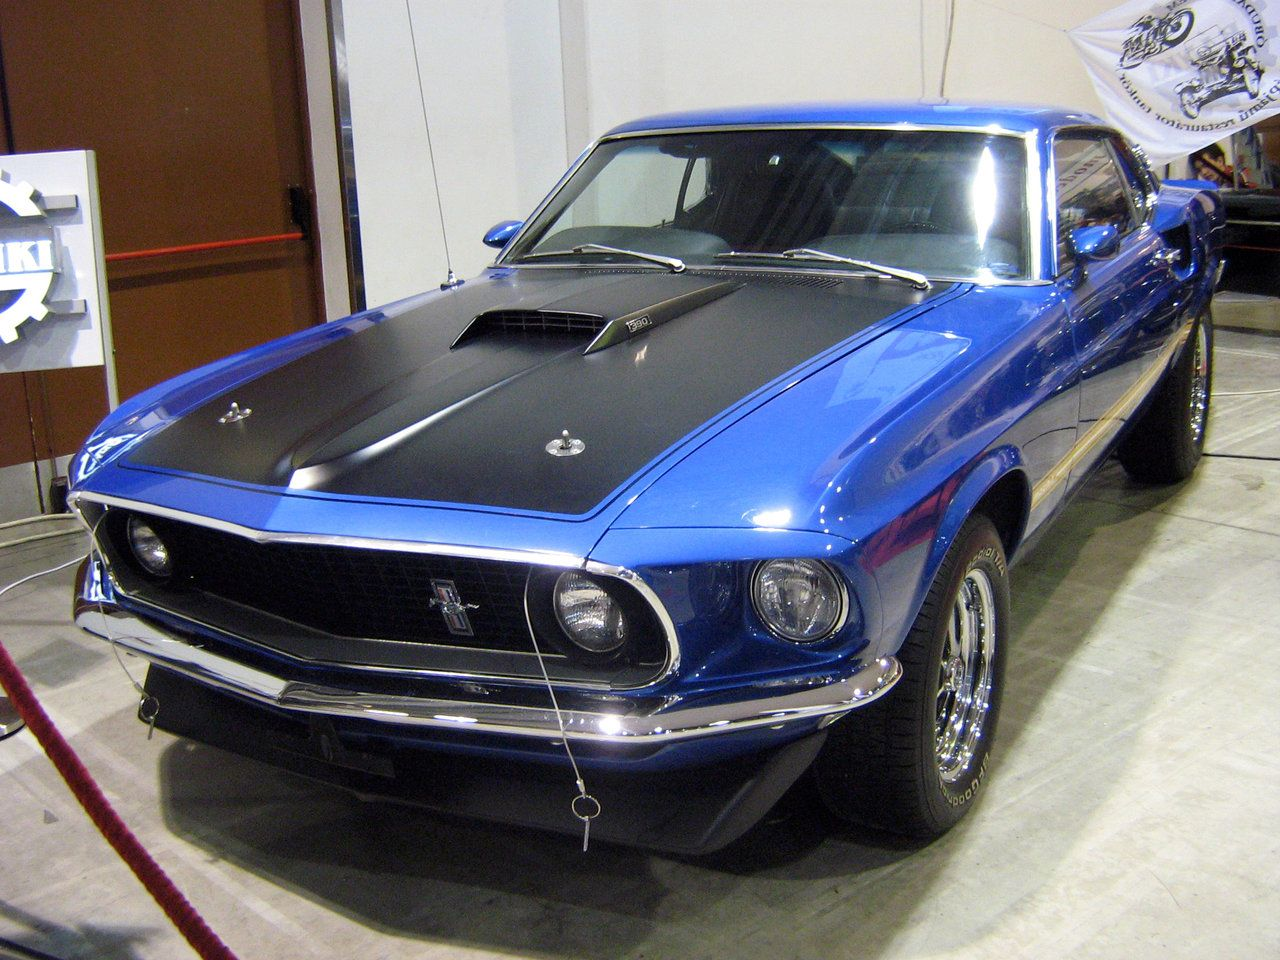 1969 Mustang Mach 1 390ci My Dad Had This In Red And Black I